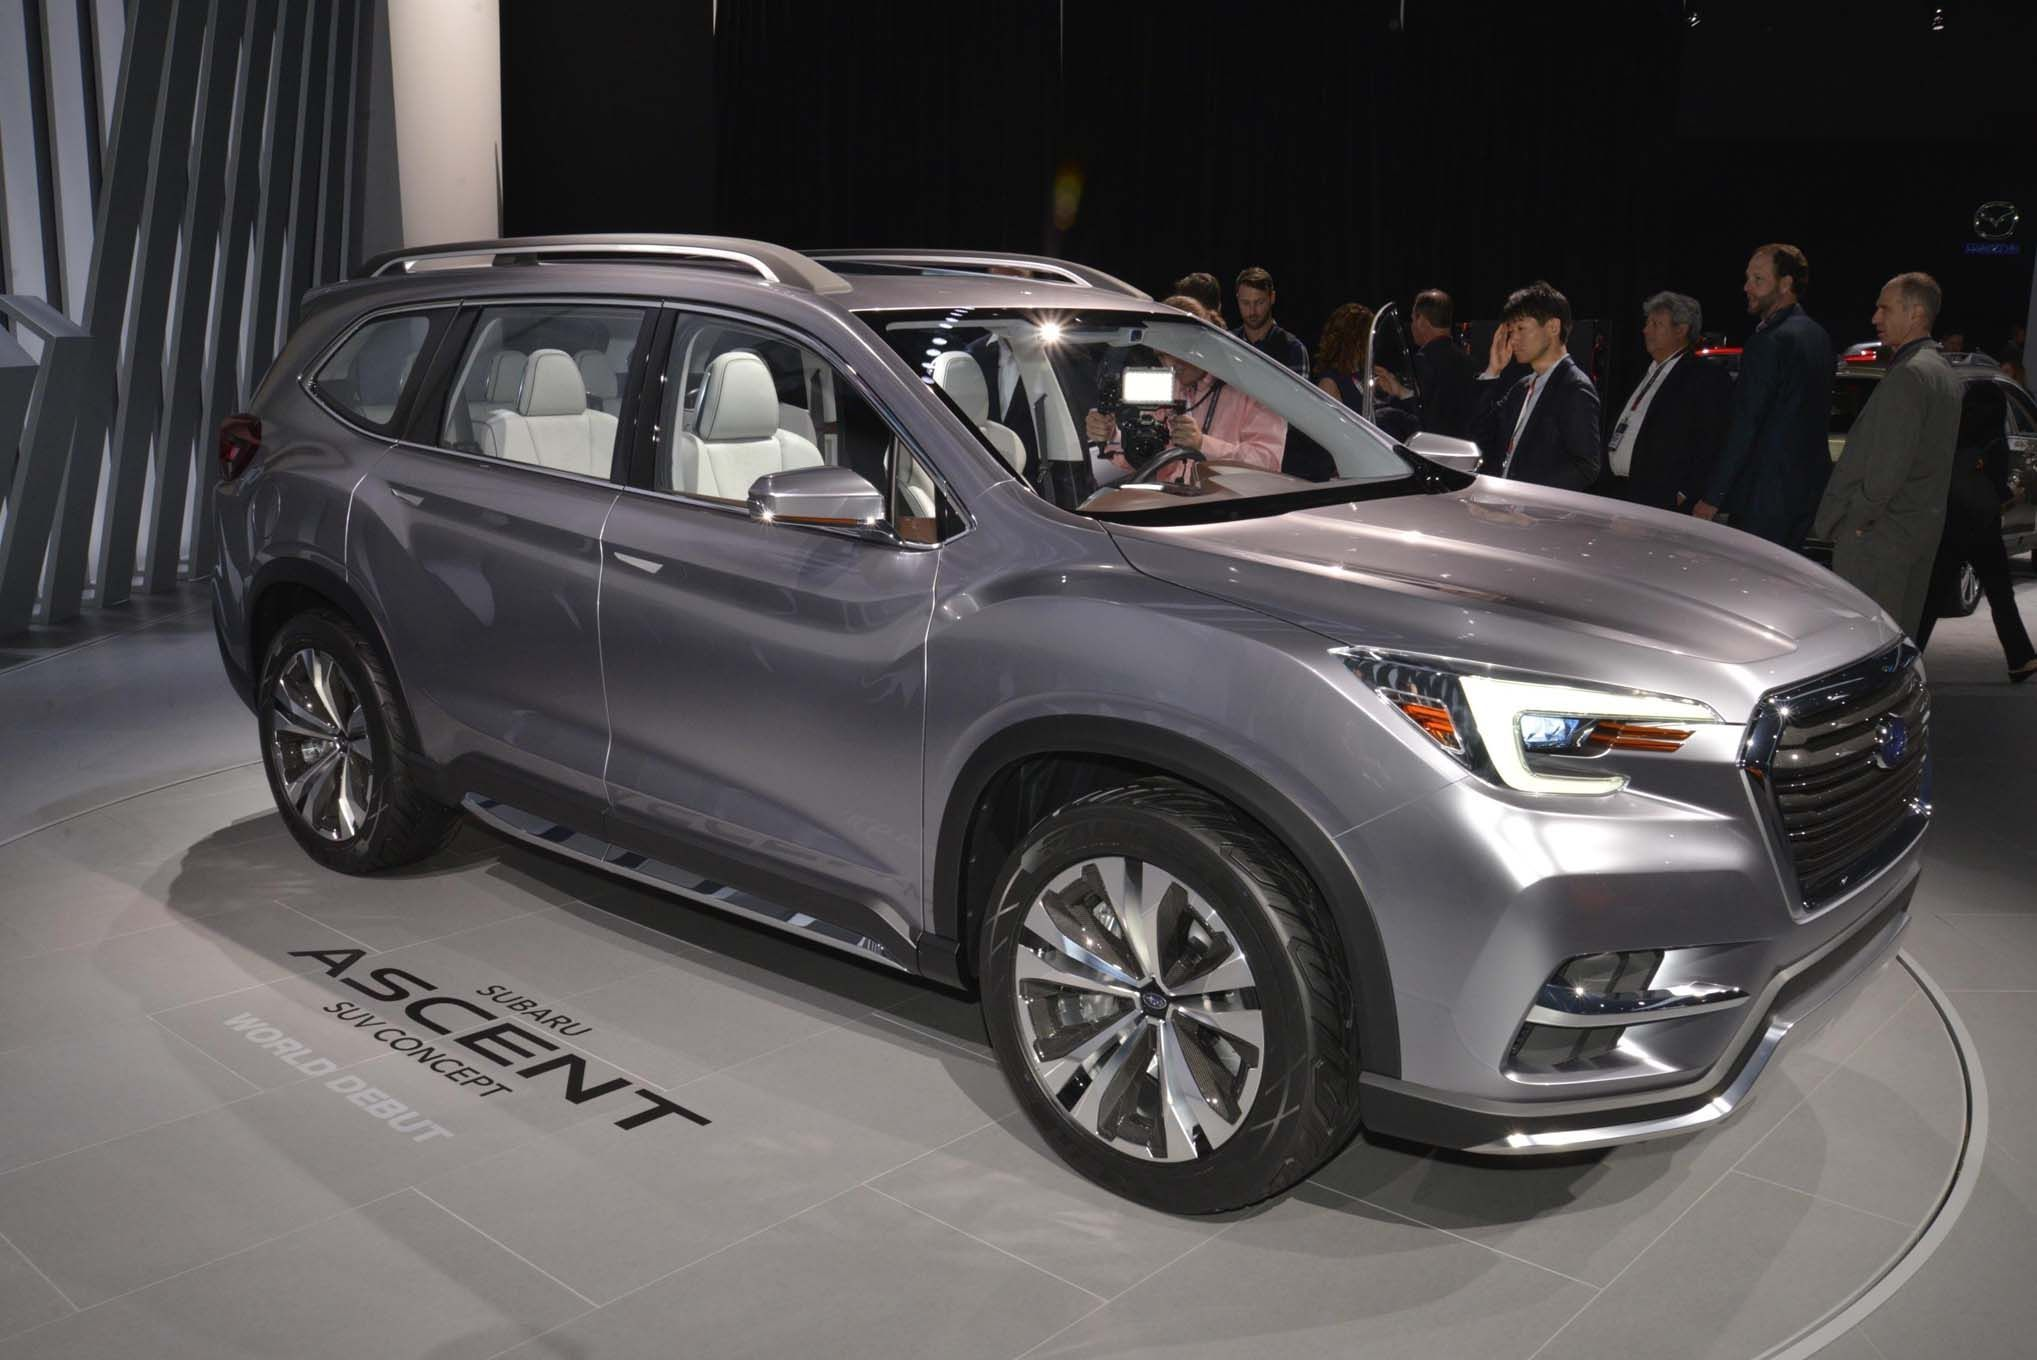 2019 Subaru Forester Release Date Outback 2017 Compact Suv Car Photos